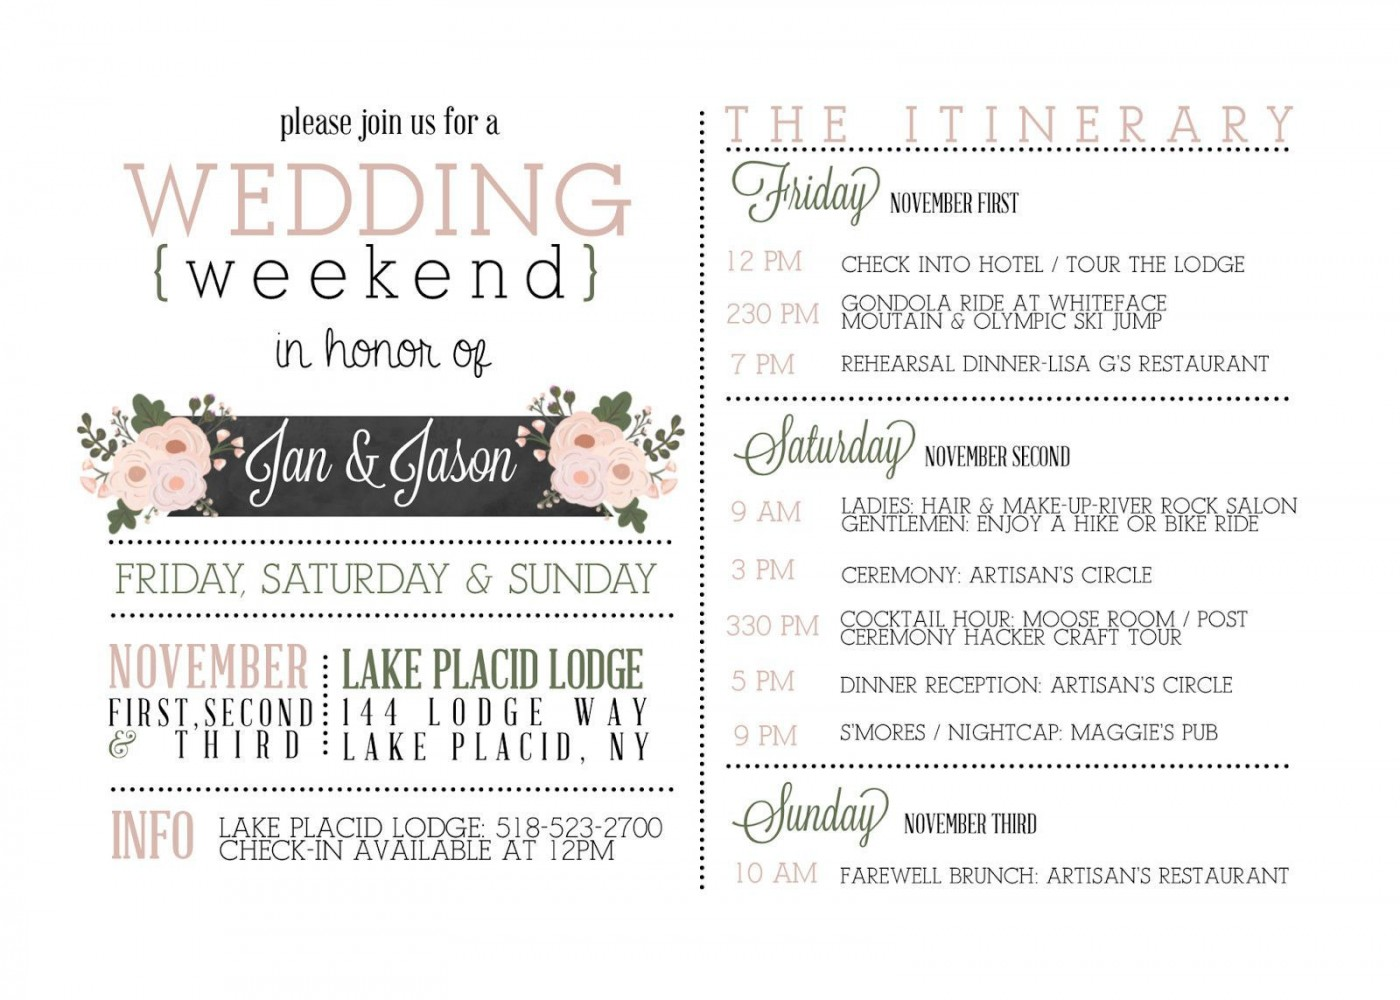 000 Beautiful Wedding Weekend Itinerary Template High Def  Day Timeline Word Sample1400